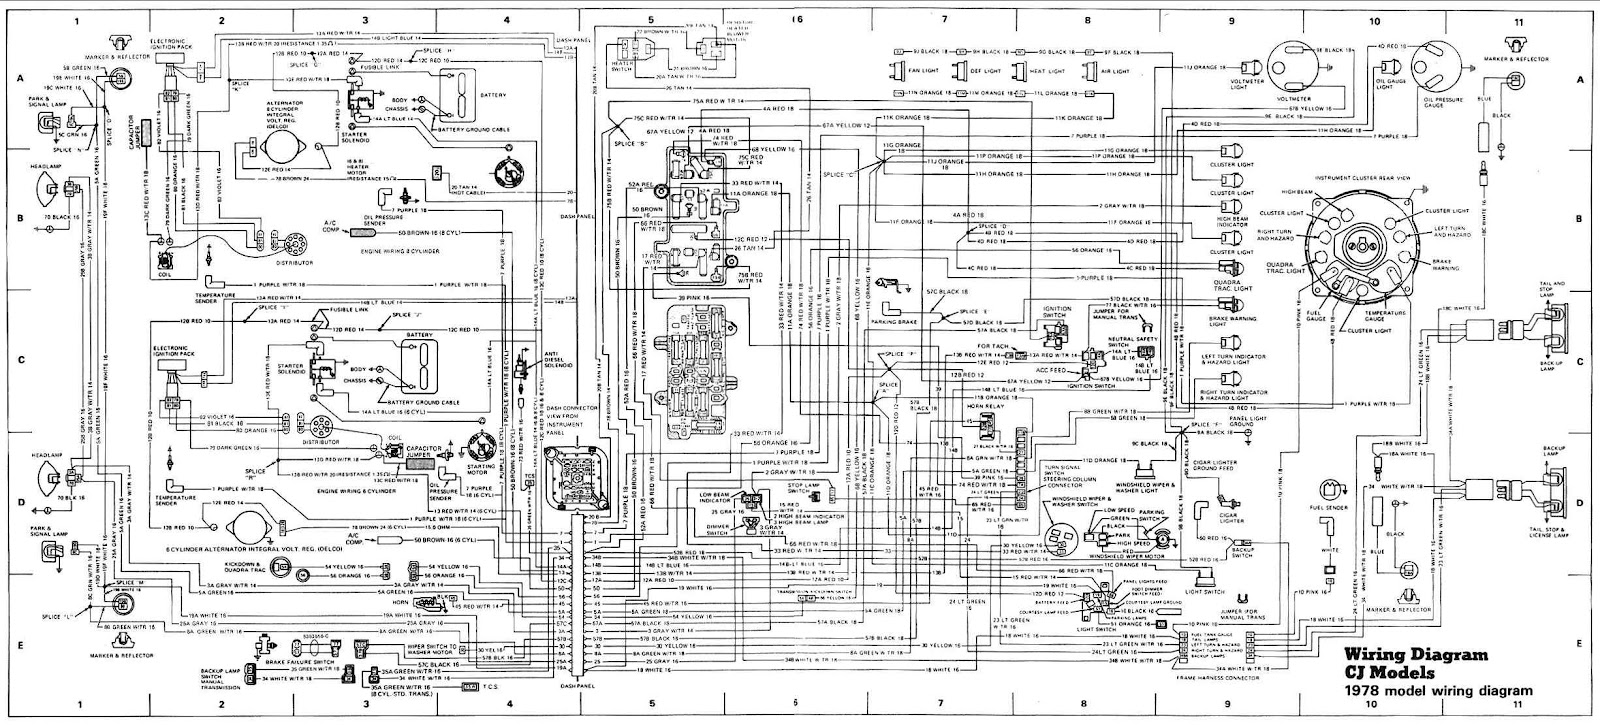 Jeep CJ Models 1978 Complete Electrical Wiring Diagram jeep stereo wiring diagram jeep free wiring diagrams 2003 jeep liberty radio wiring diagram at soozxer.org